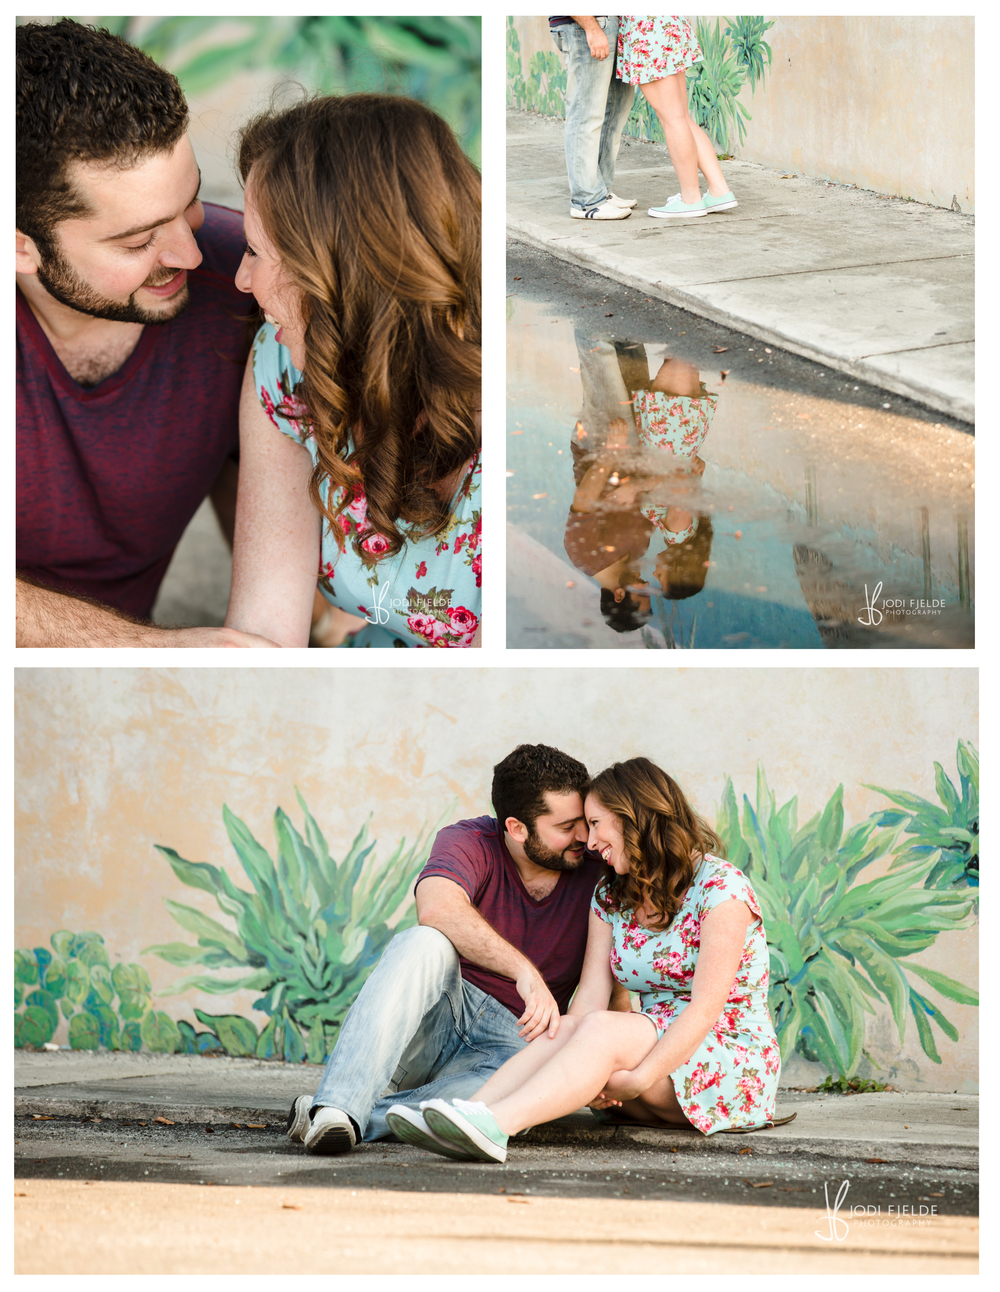 Dania_Beach_Engagement_Julia_Elias_Jodi_Fjelde_Photography-2.jpg